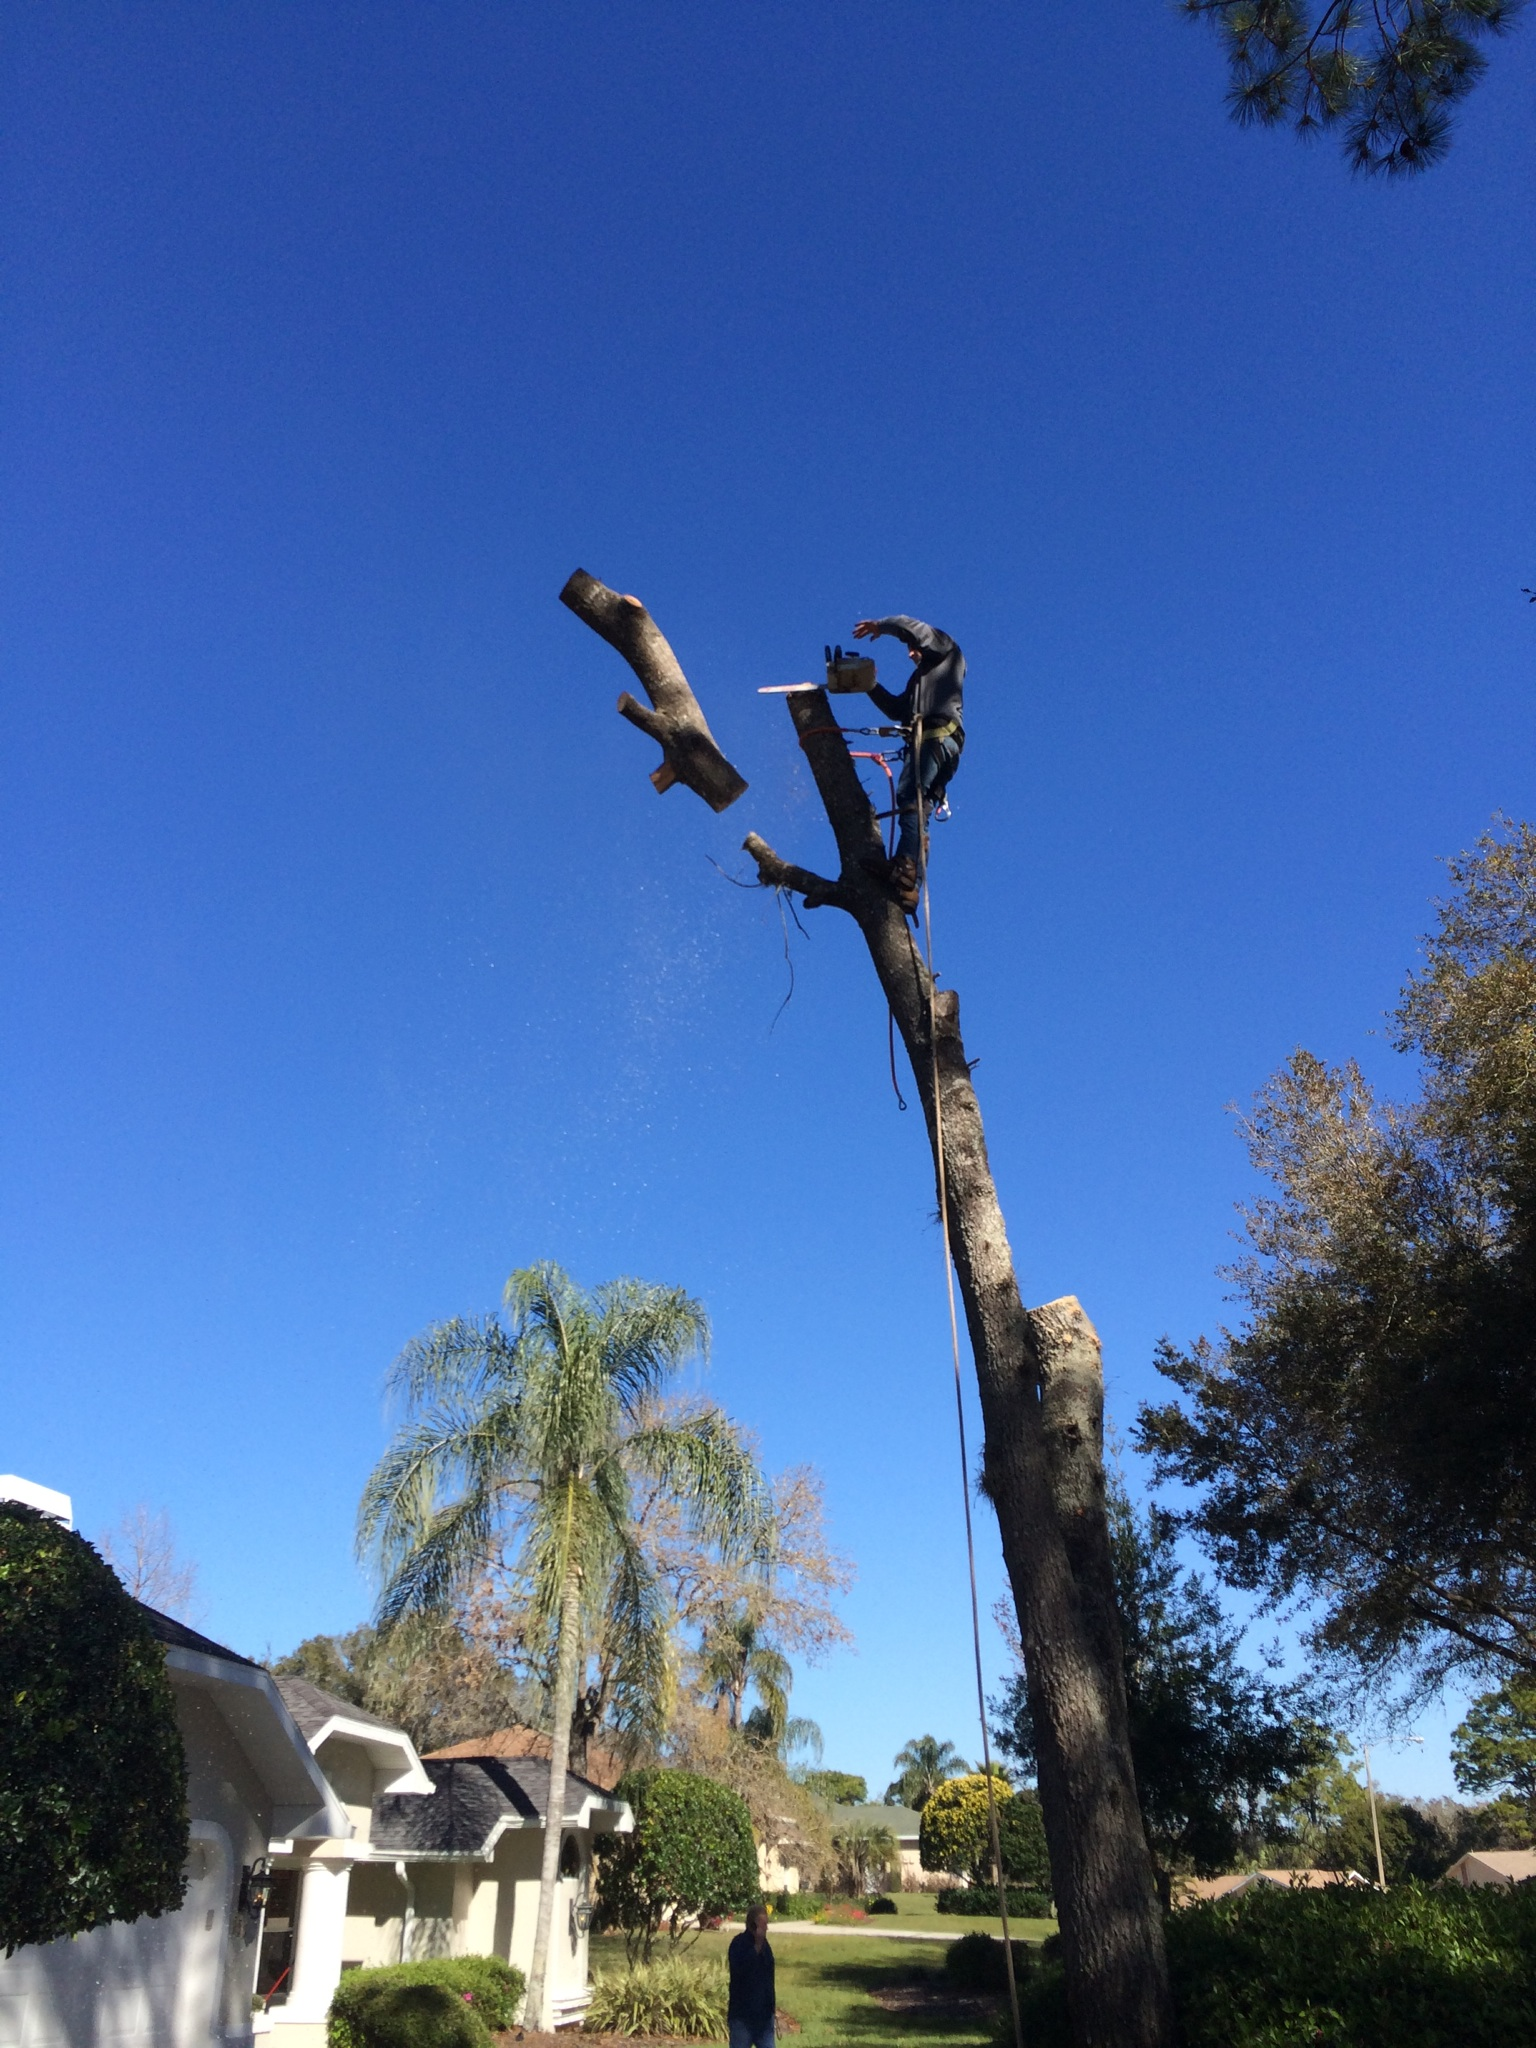 how to get a tree service license